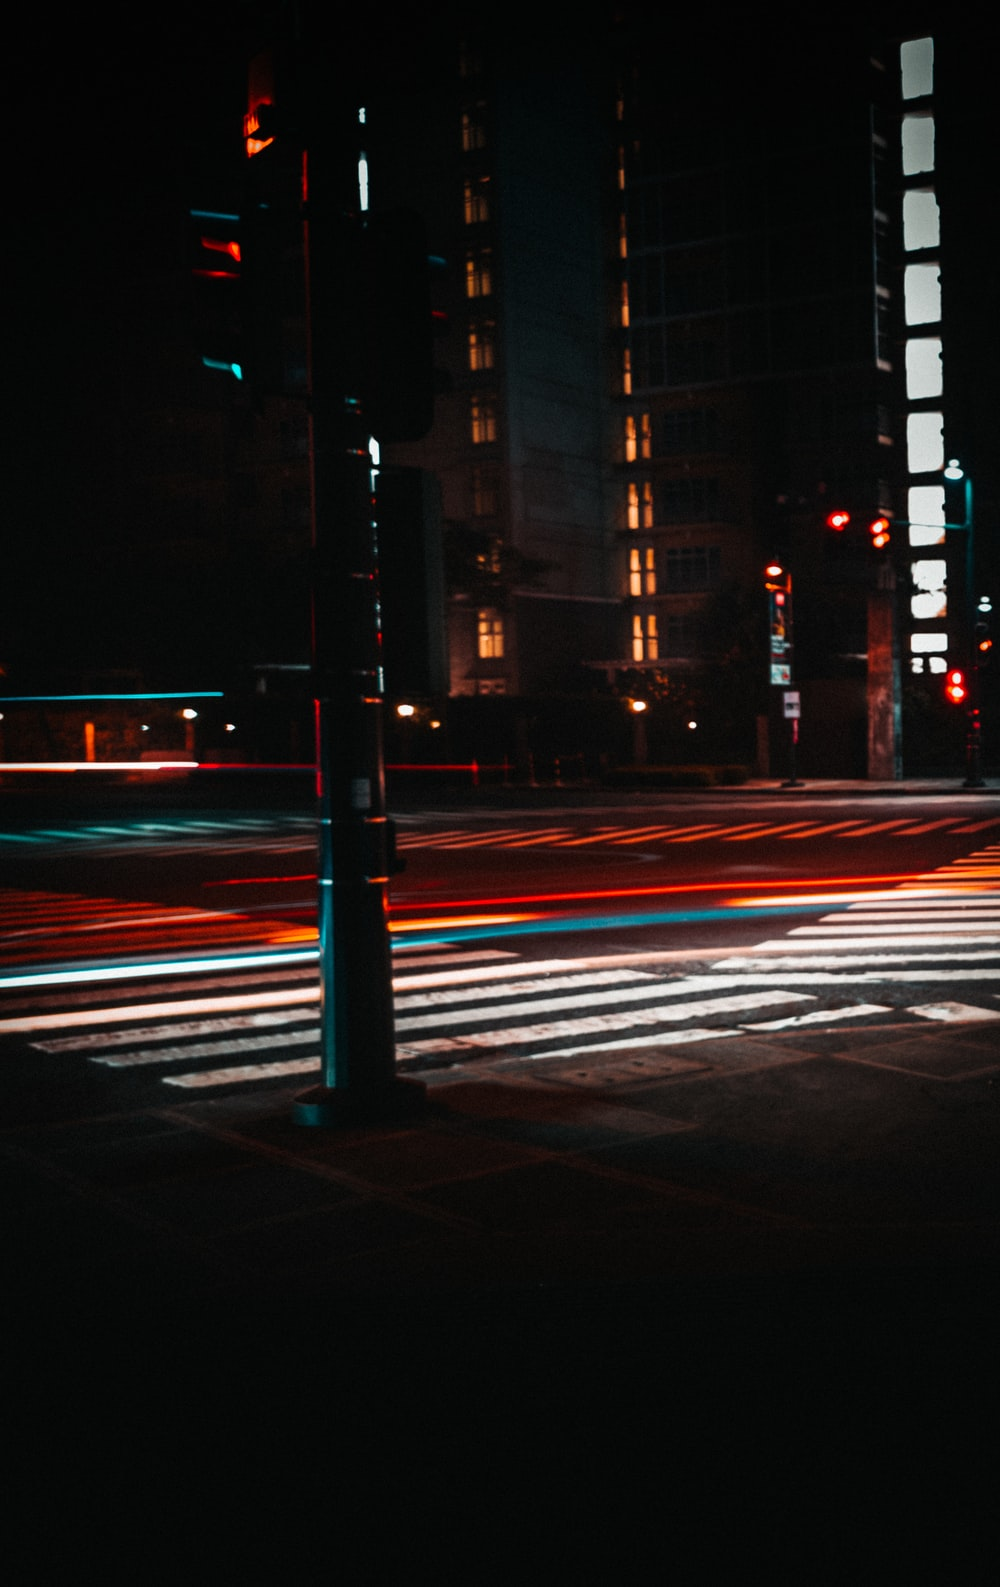 time-lapse photography of cars on road at nighttime